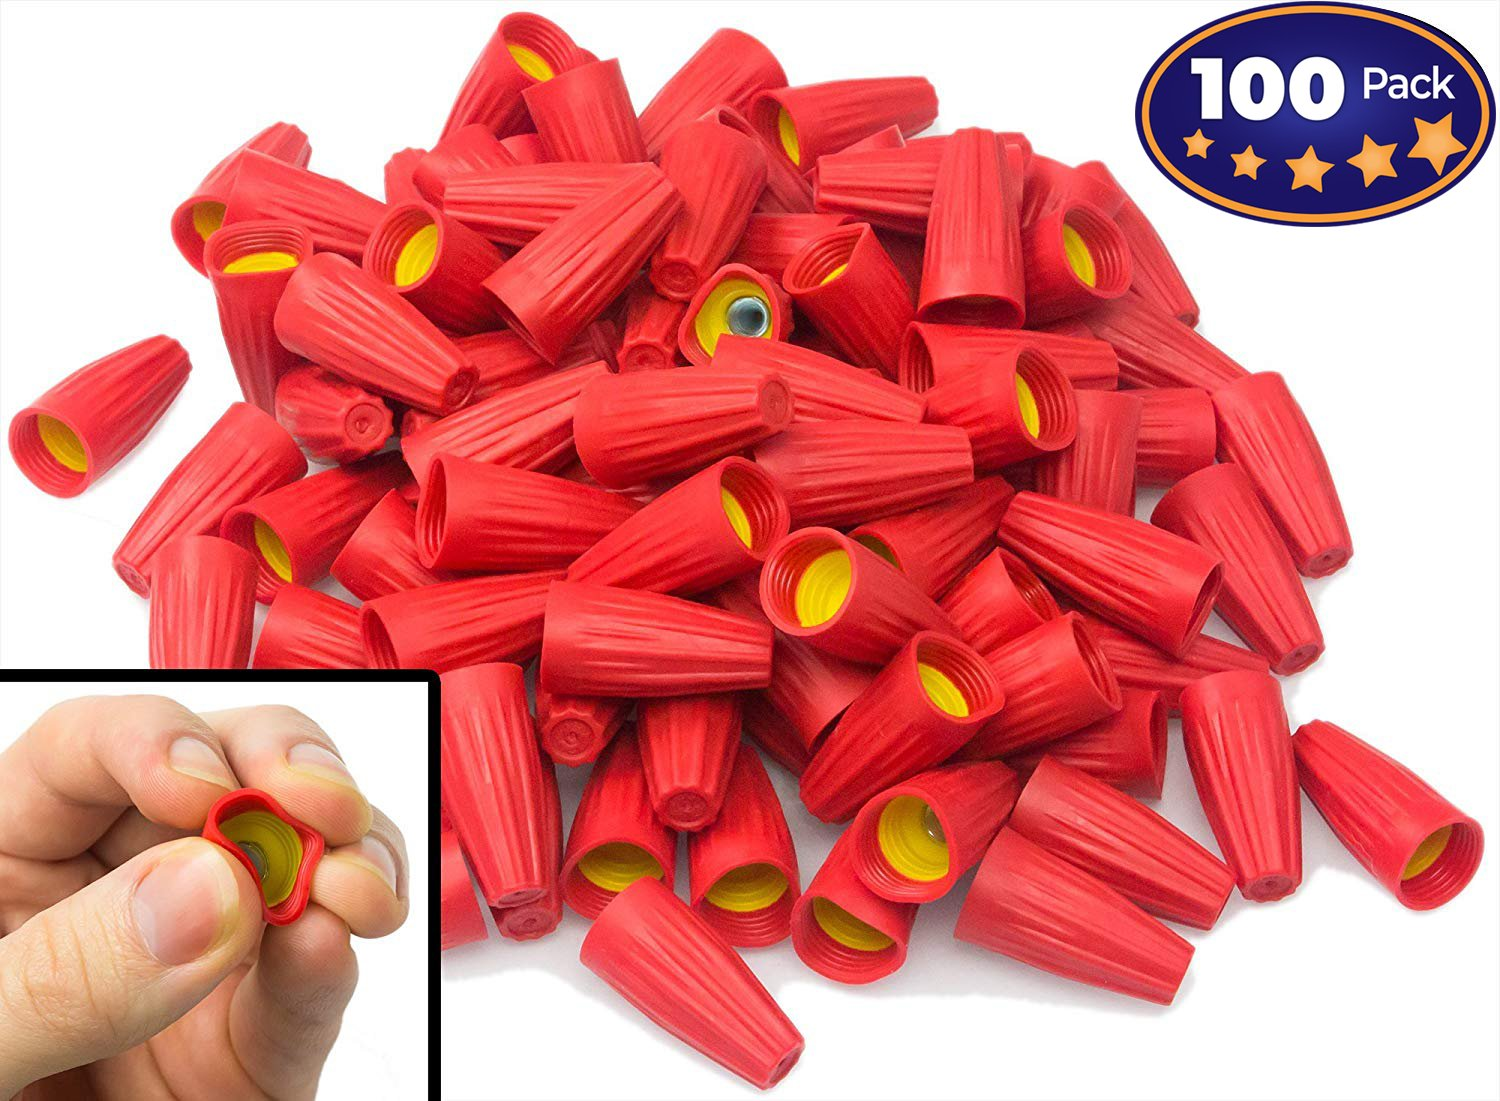 Nova Supplys Premium Ergonomic Wire Nuts 100 Pack. Cushioned Electrical Connectors Are Easier On Your Hands, Faster to Install. Caps Fit Wide Range of Wires: #8 - #18 Gauge, 600v, UL-Certified.